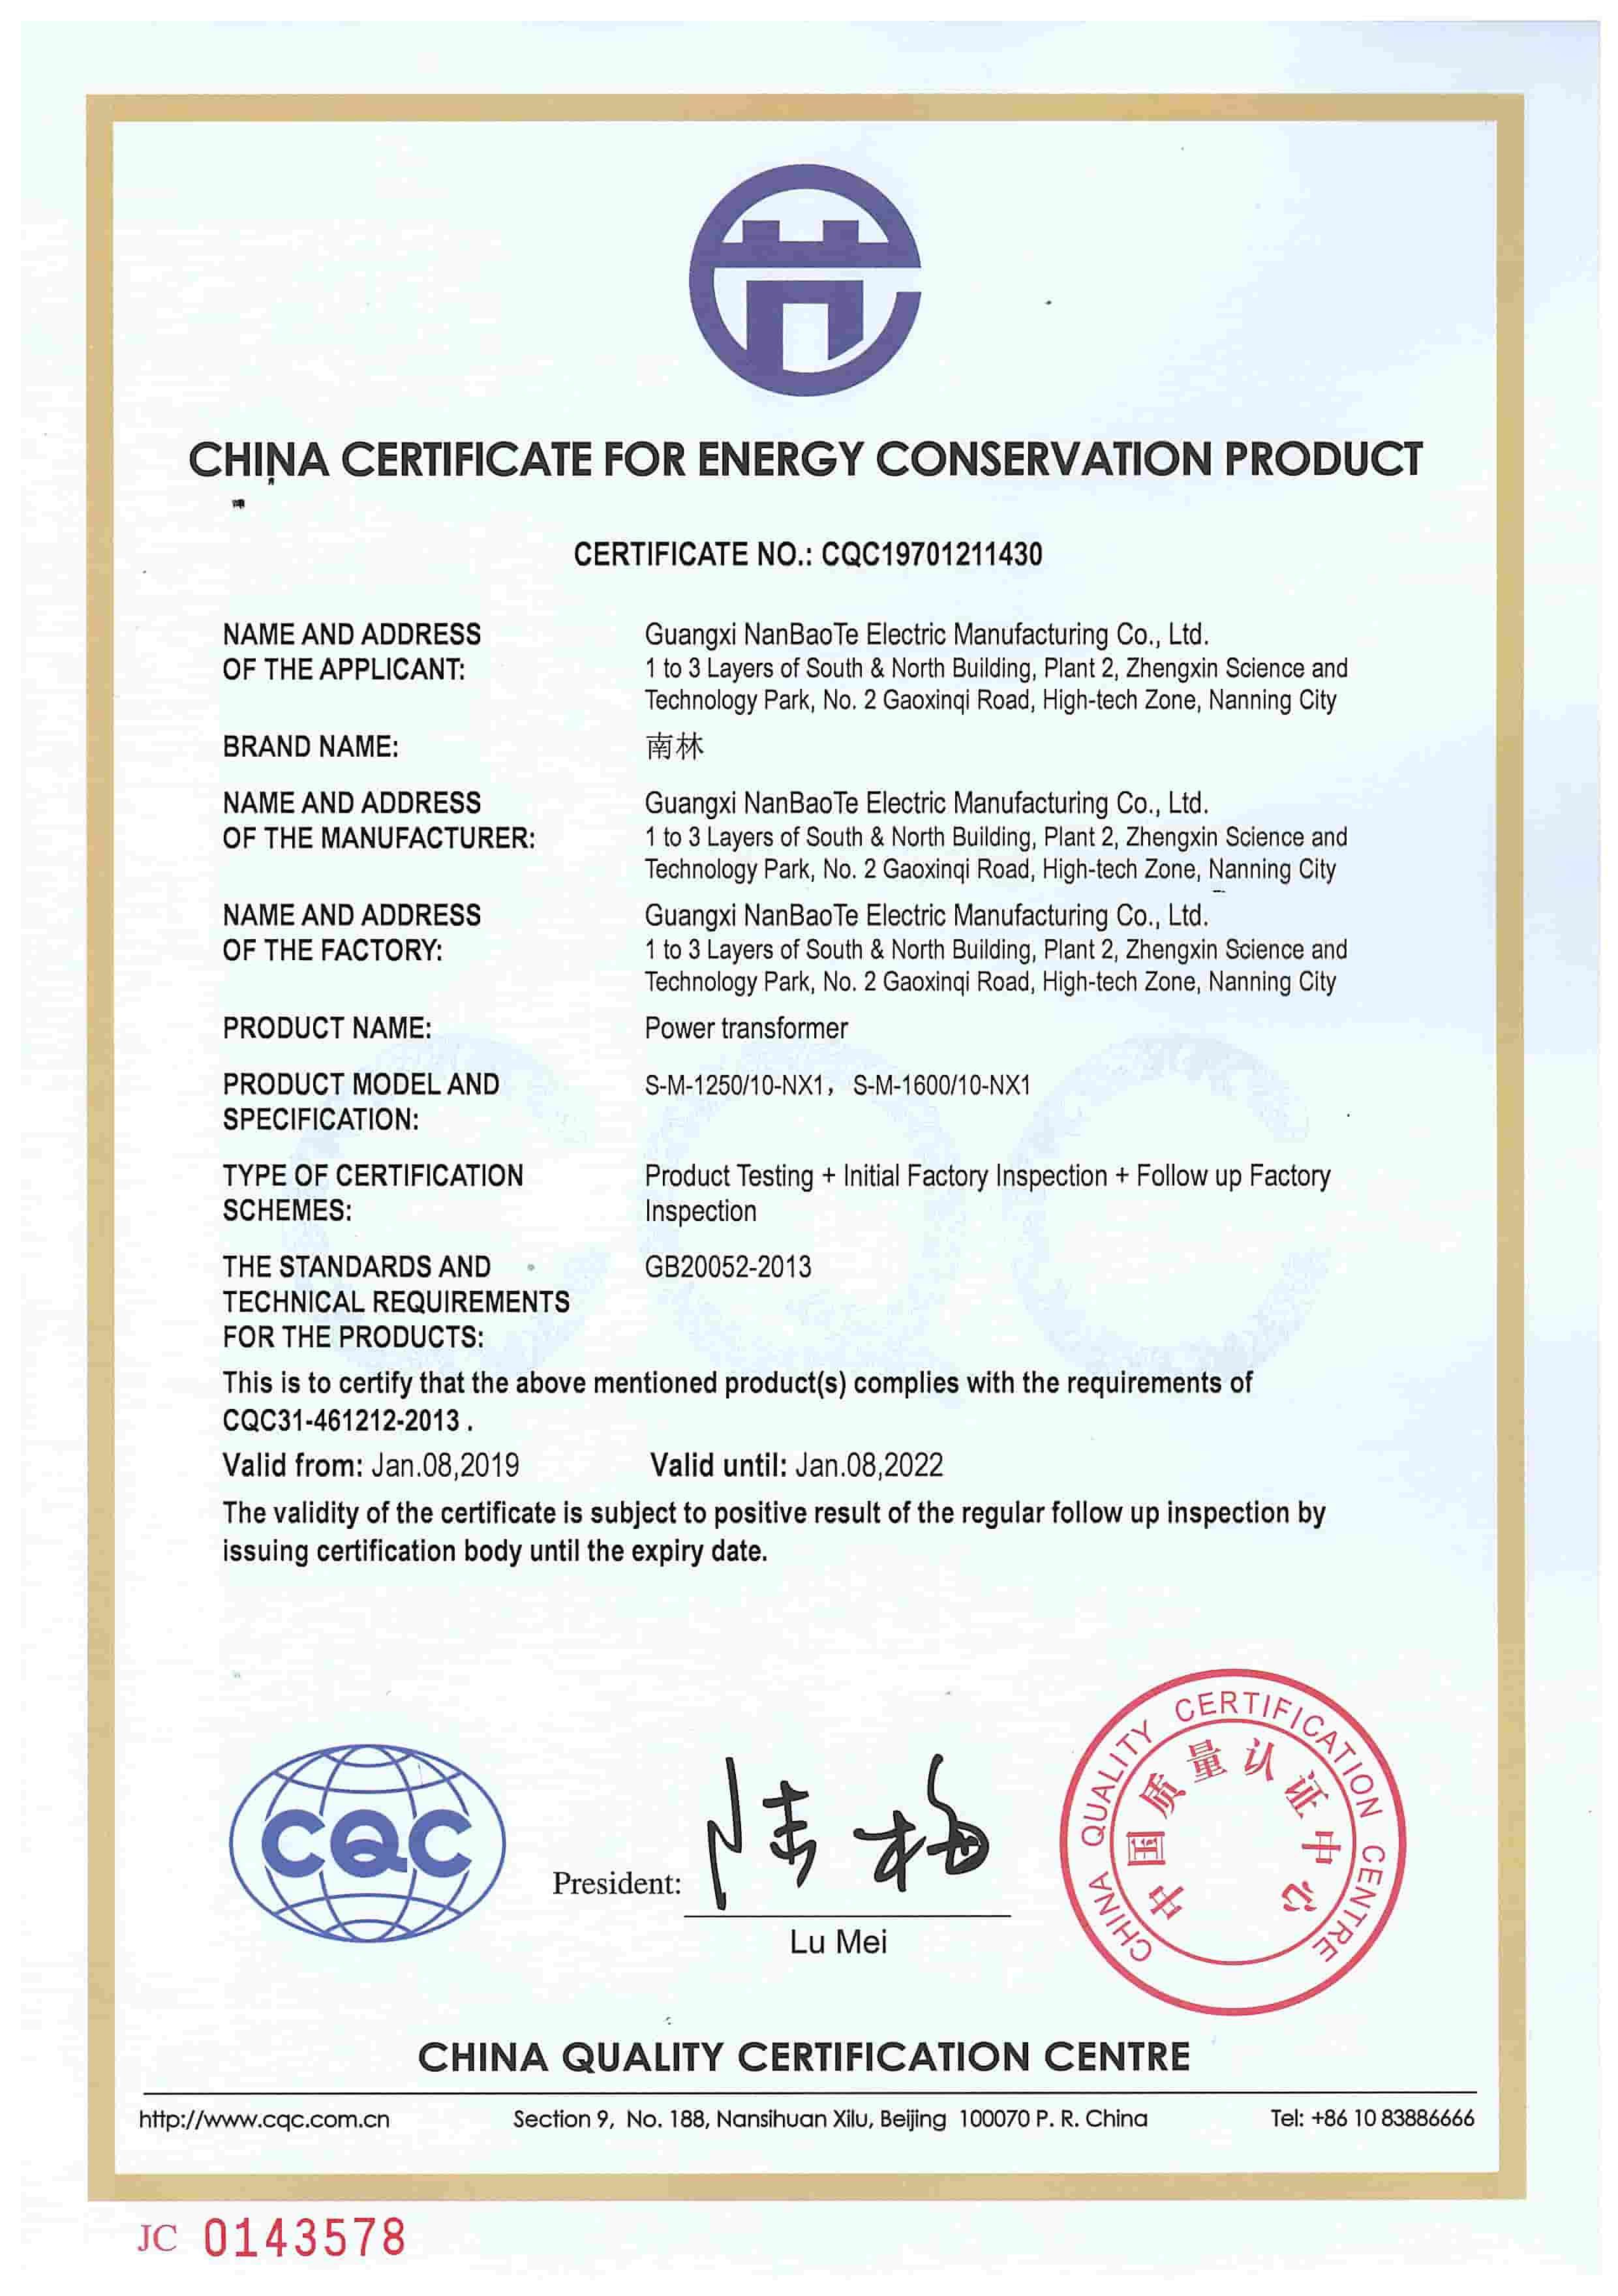 Energy Conservation Certificate for S-M-1250~1600-NX1